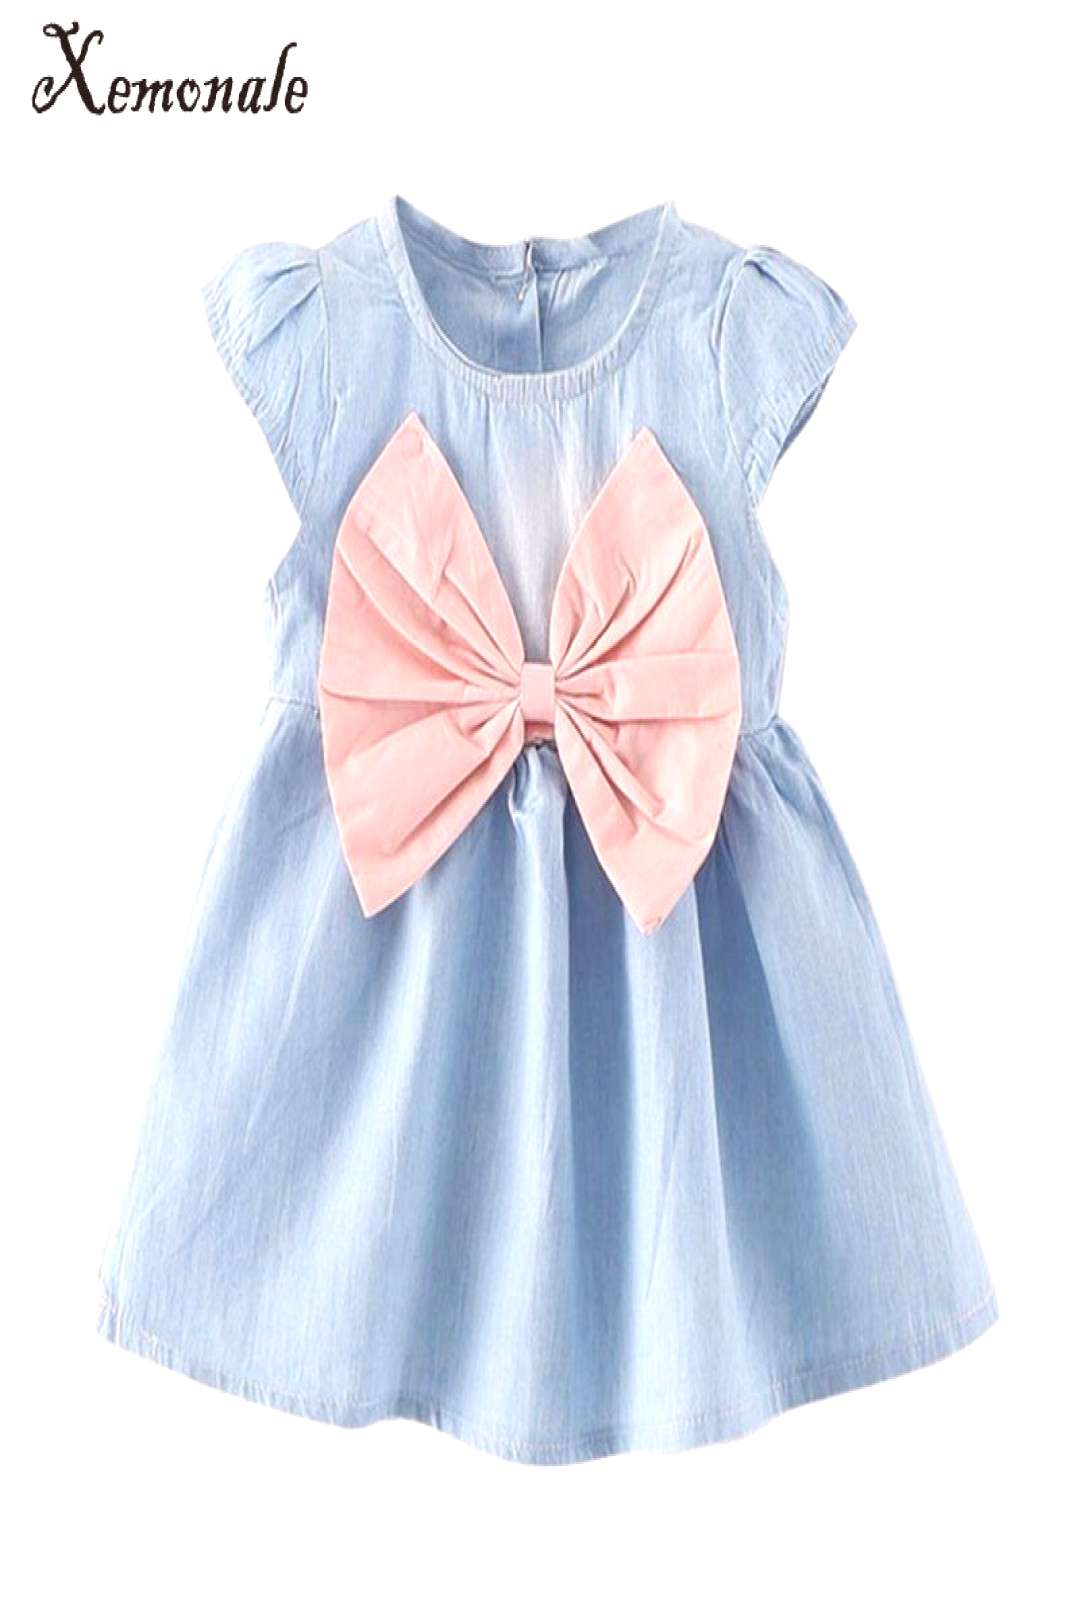 2017 new design style baby mini children summer wear short sleeved dress fashion party baby toddler